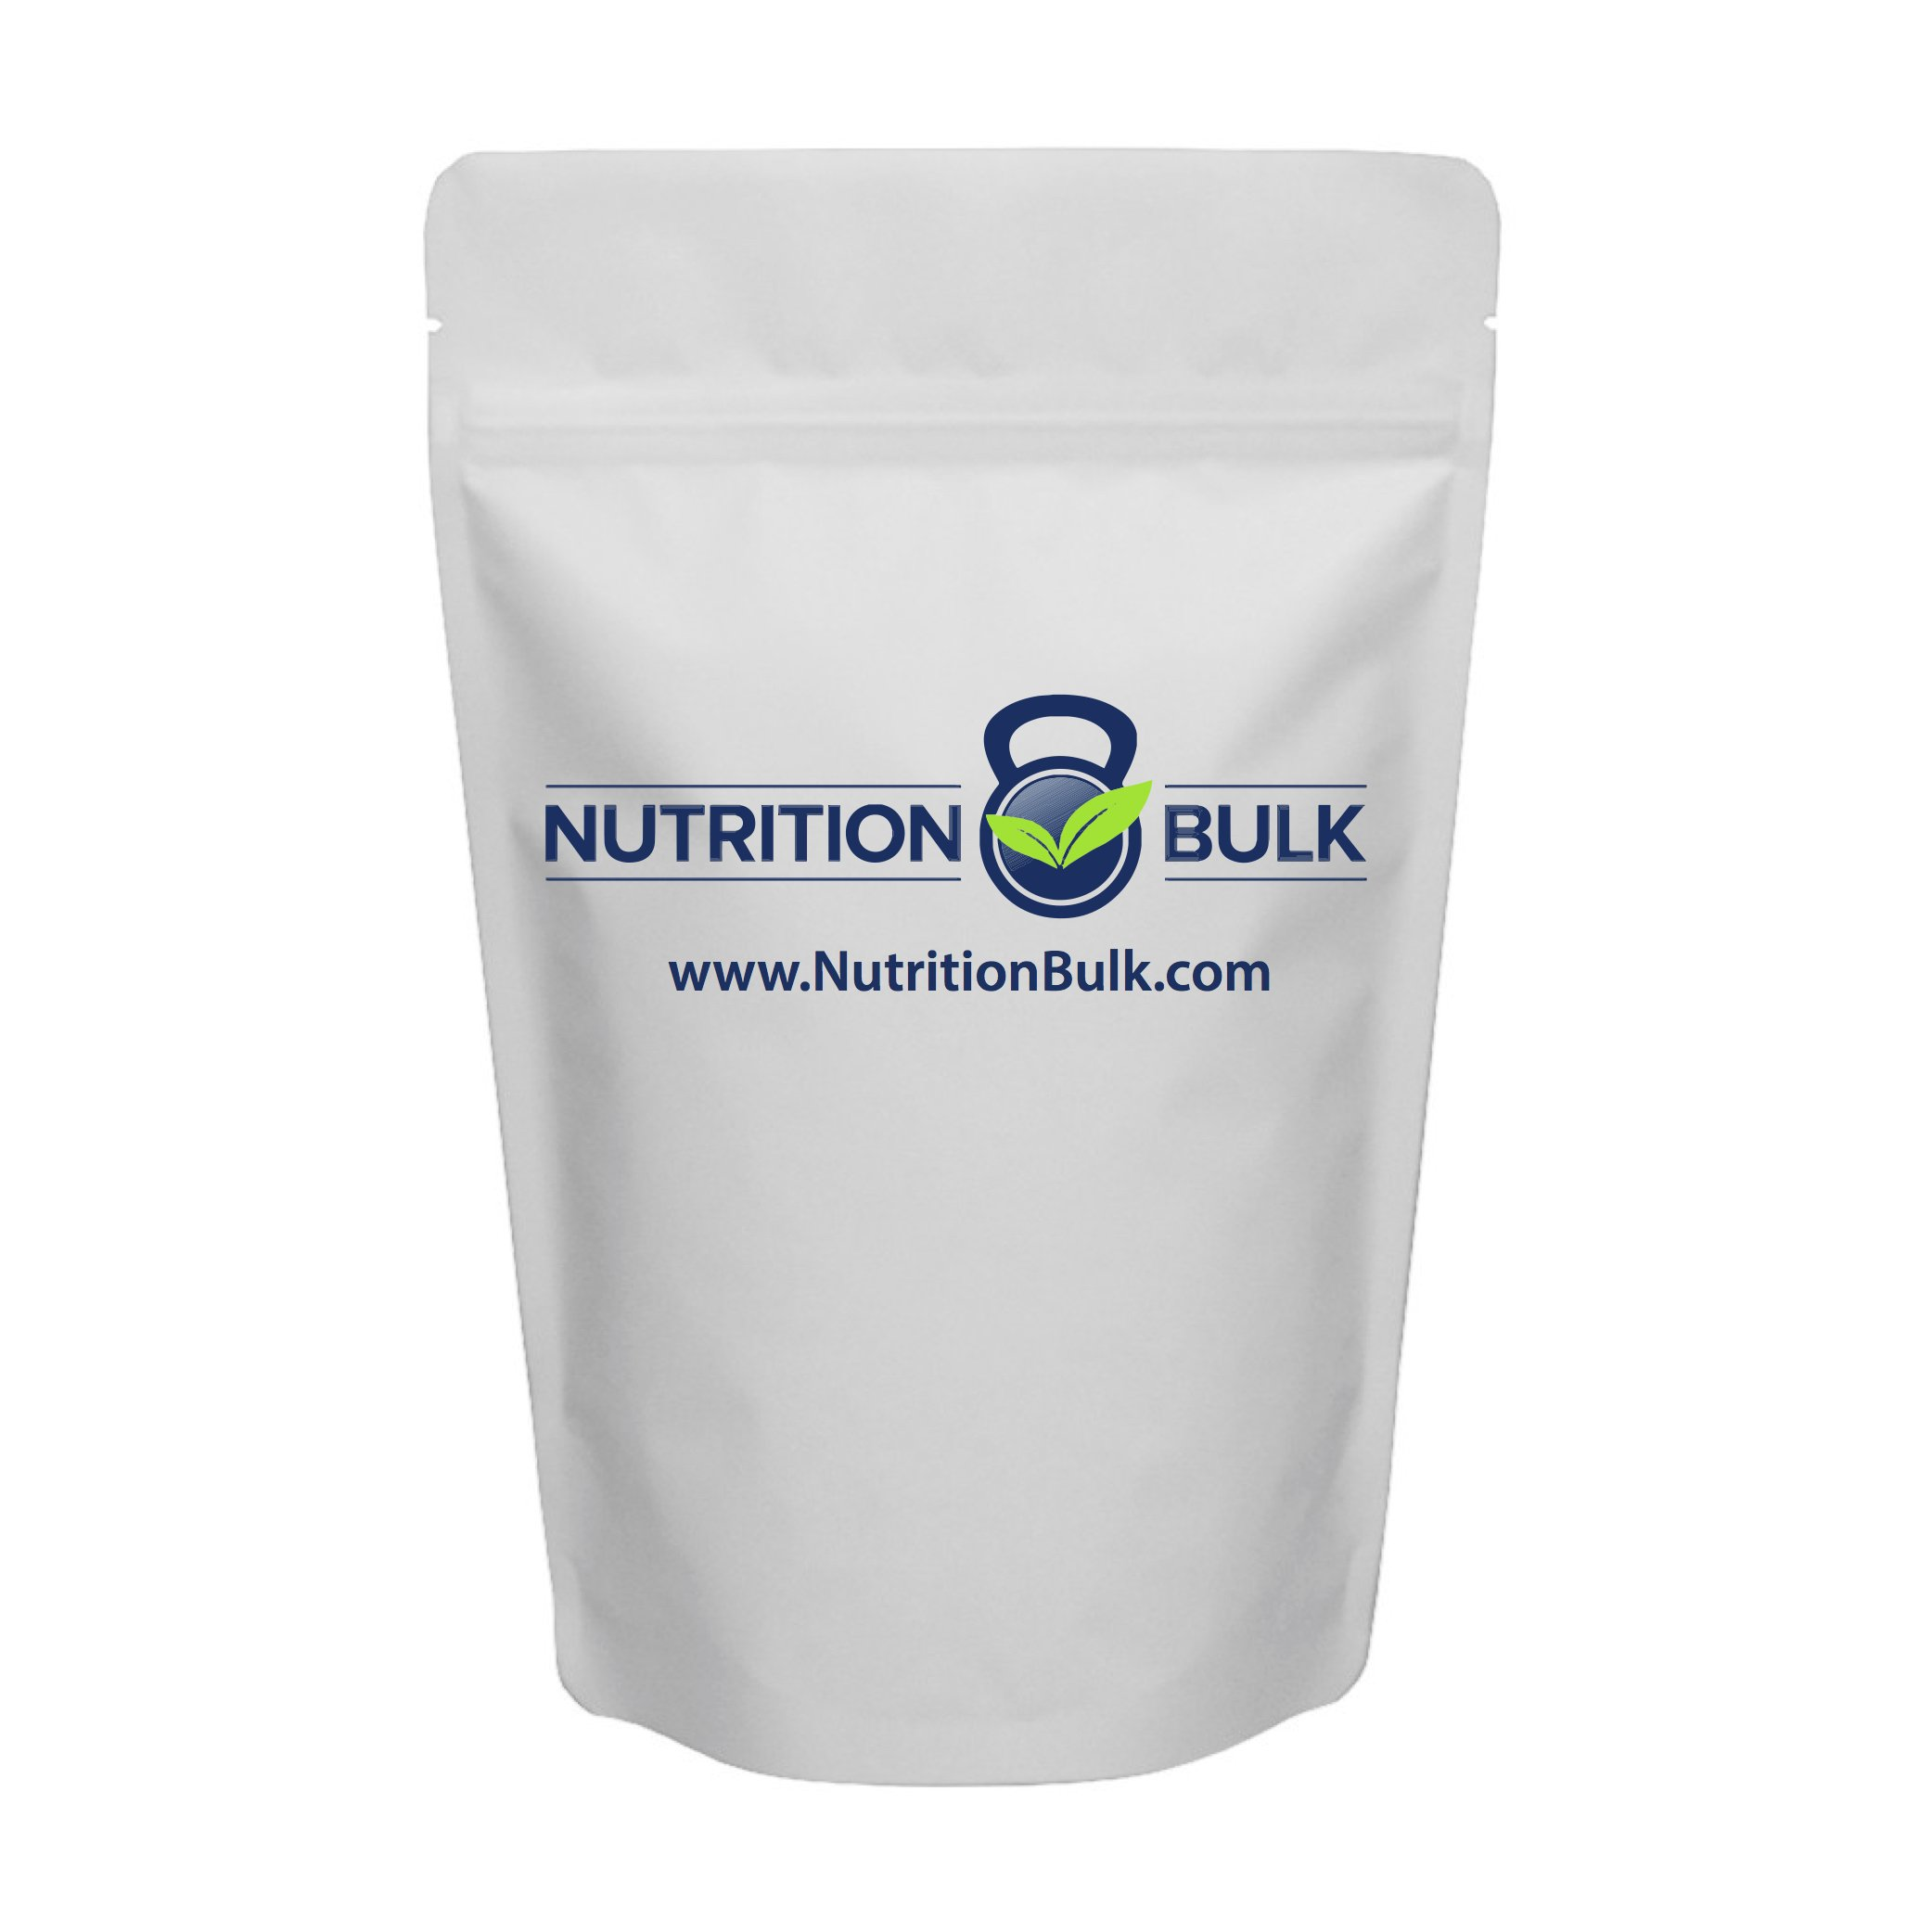 Spirulina Powder - Nutrition Bulk, Resealable Bag, Natural, Blue Green Algae, Superfood, Vegan, Non-GMO, Non-Irradiated, Fish (5 lb)